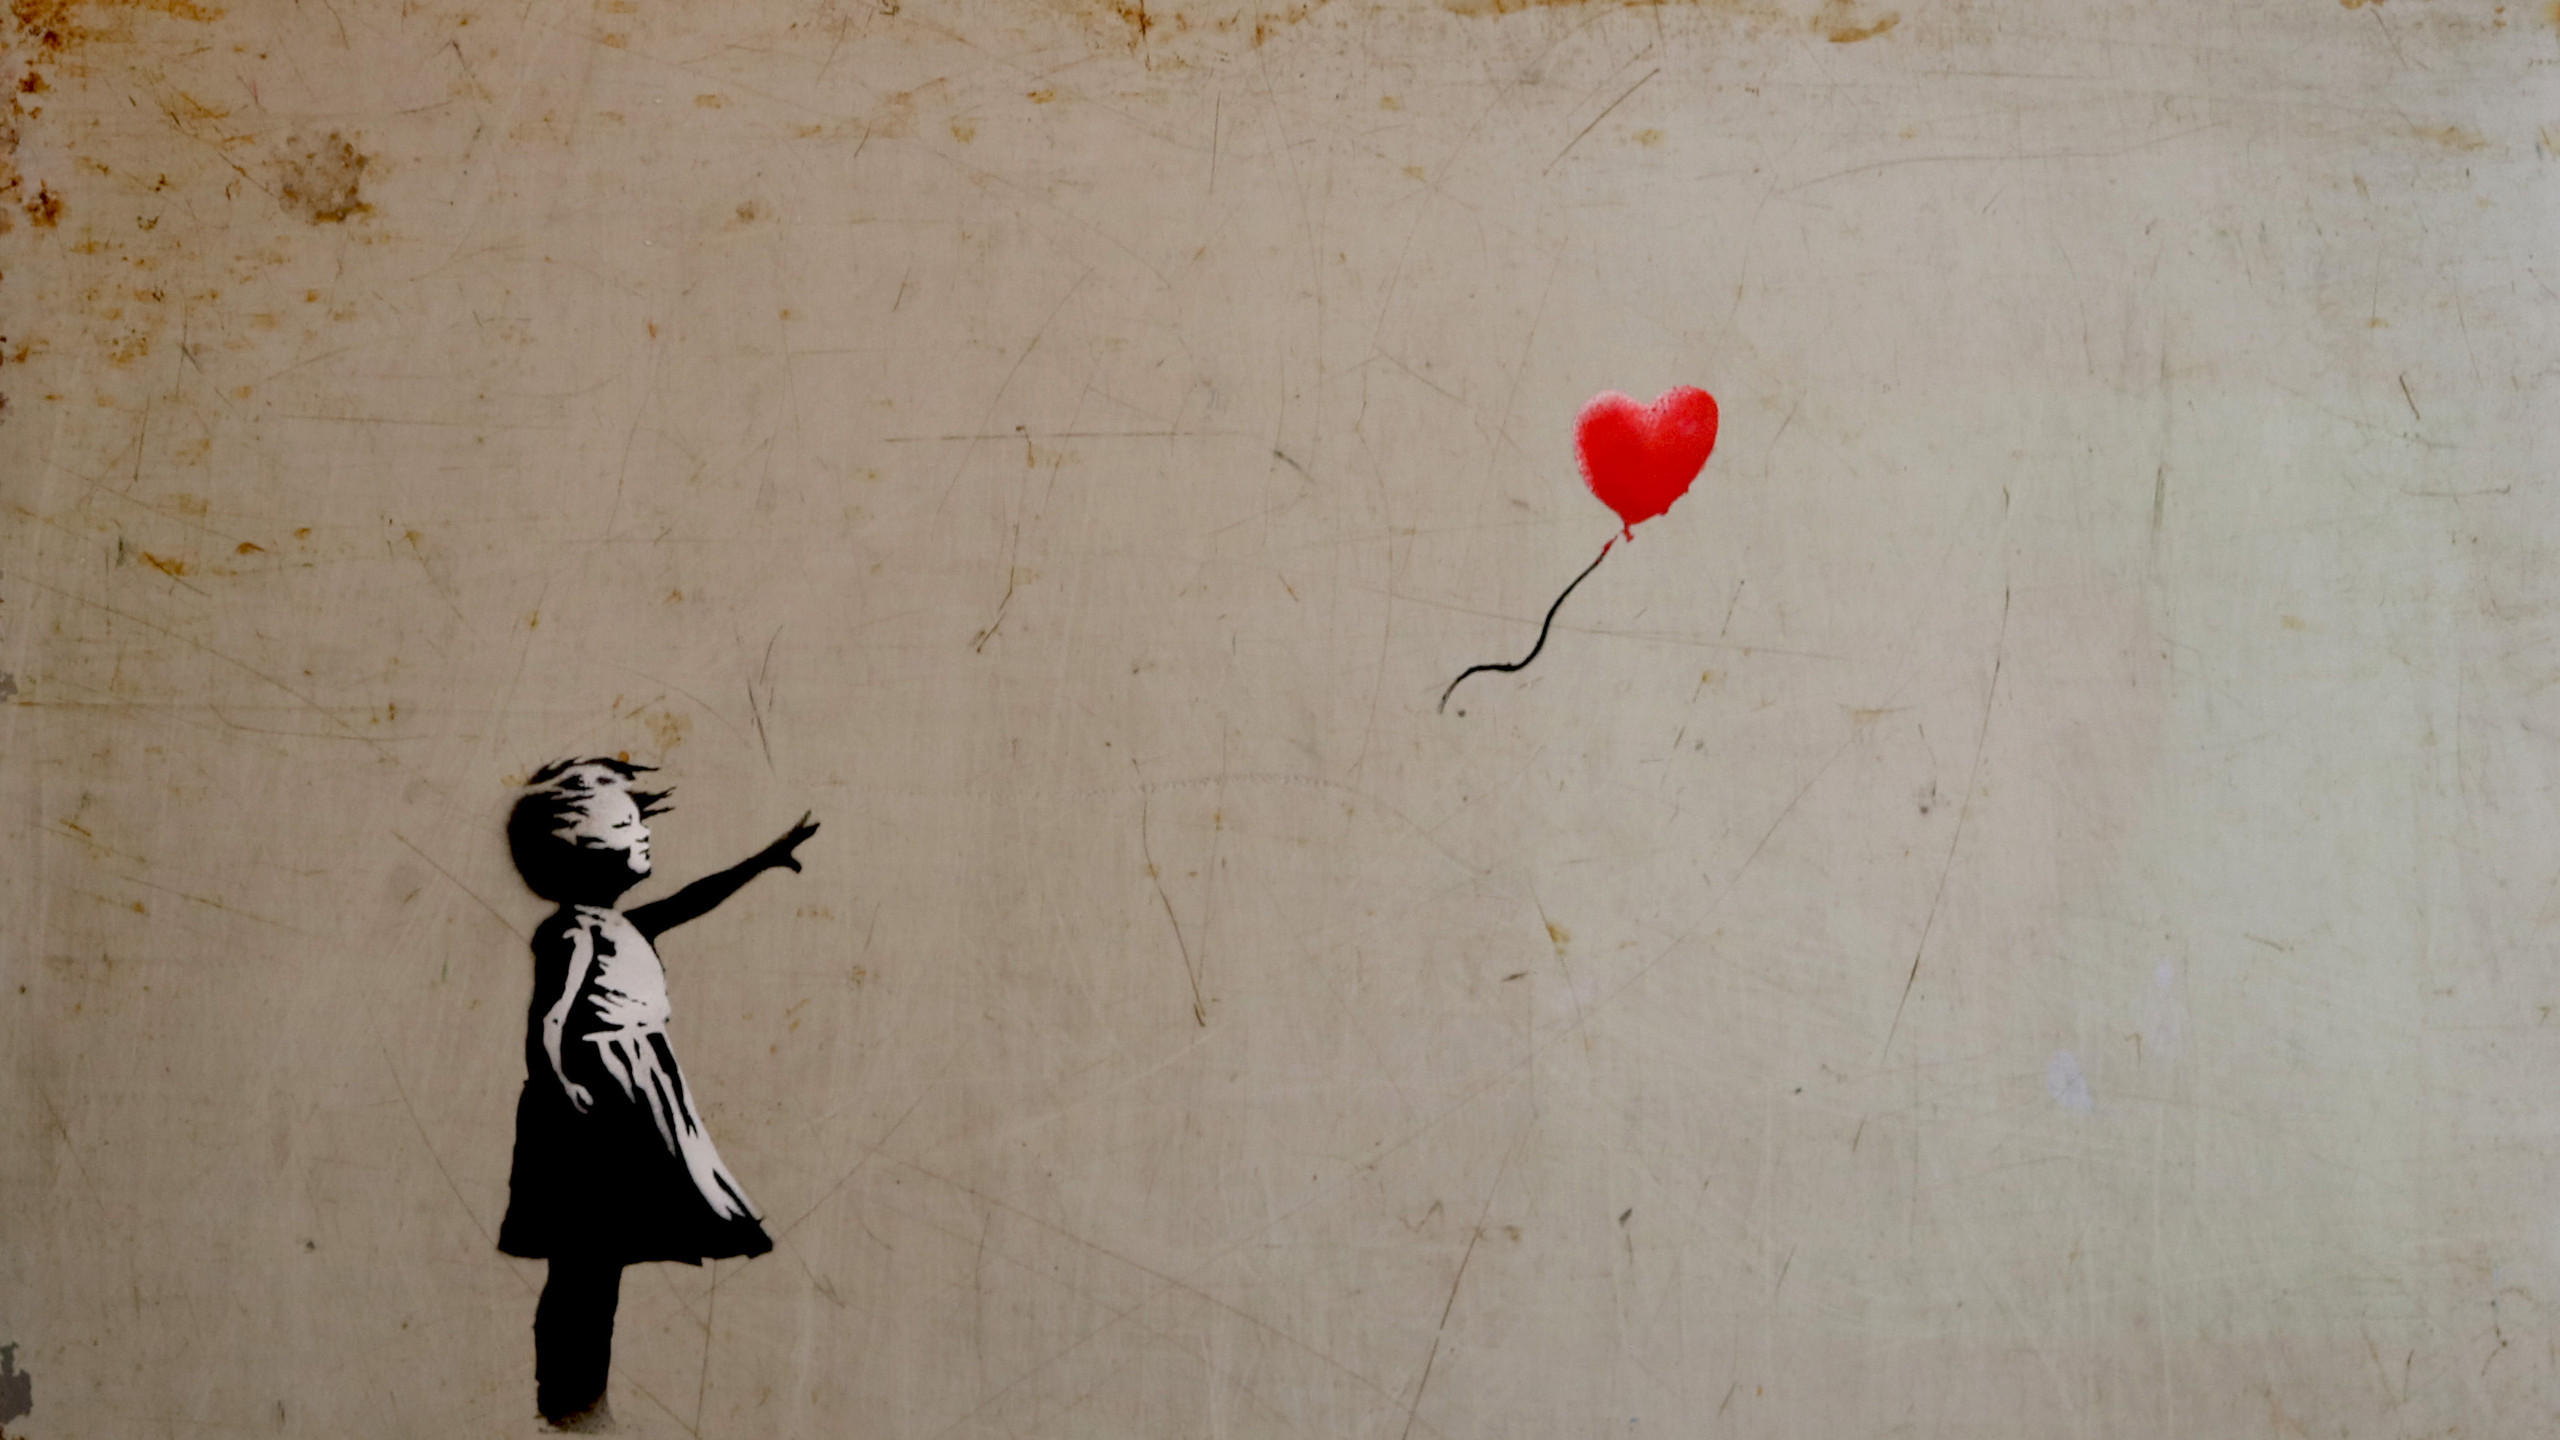 The image evokes the idea that hope is essential, as it gives the ppl motivation to continue on in life despite seemingly dreary circumstances. Banksy is cleverly able to use the squalid surroundings in which the work is placed to portray bleakness during difficult times and the possibility of happiness or satisfaction despite adversity. Love, symbolized by the balloon, is a fundamental human need and must be cherished.